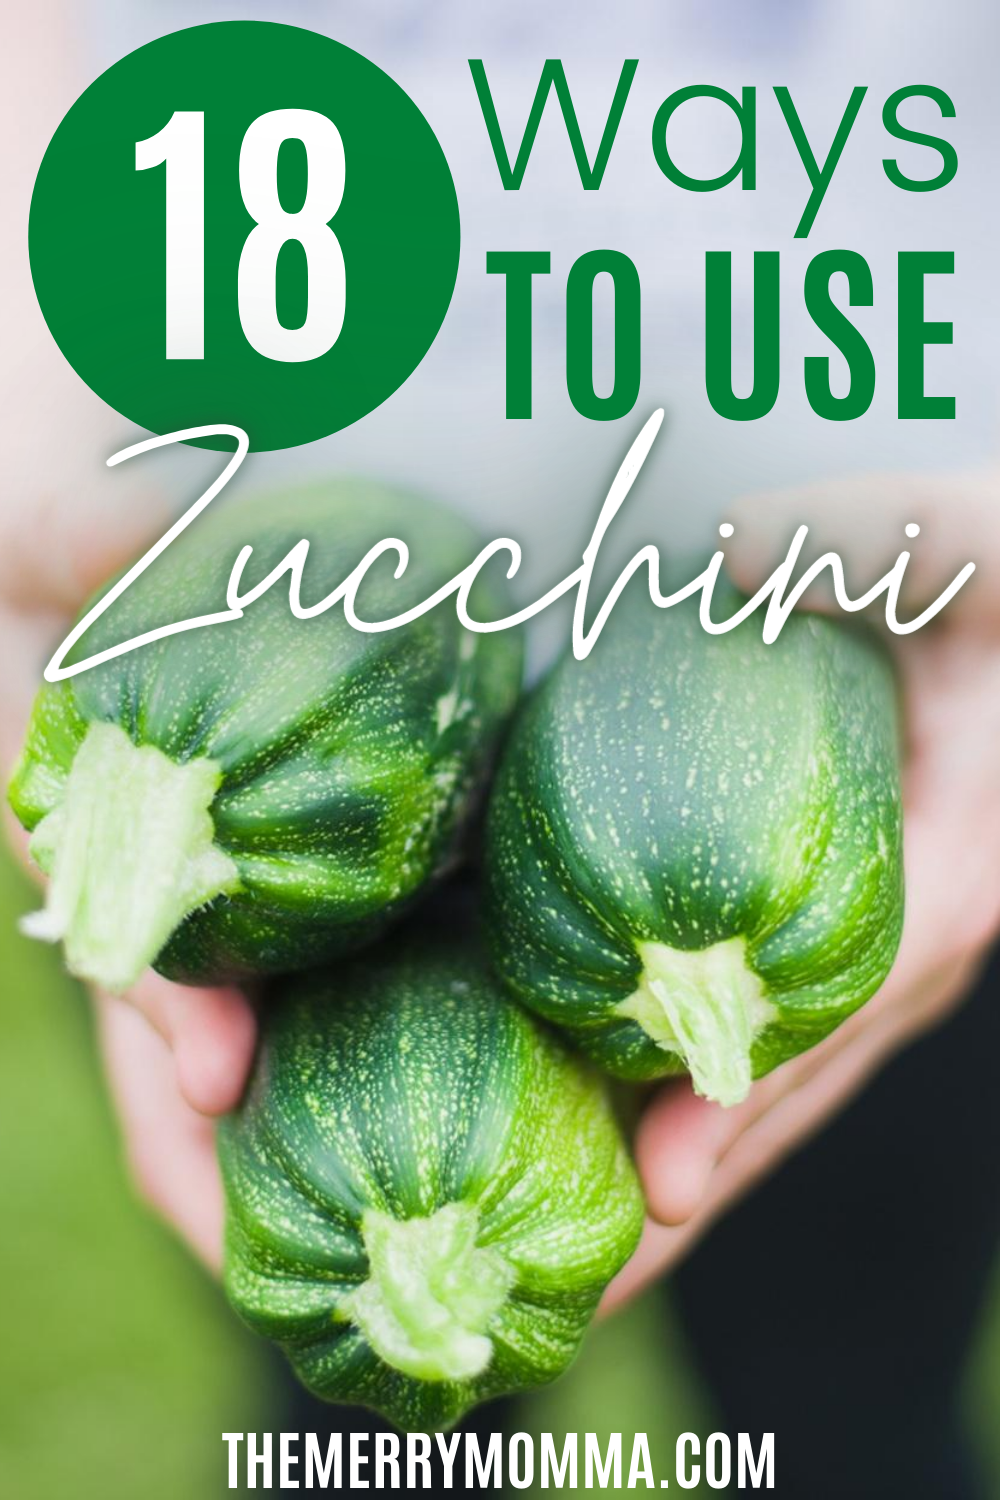 18 Ways to Use Zucchini